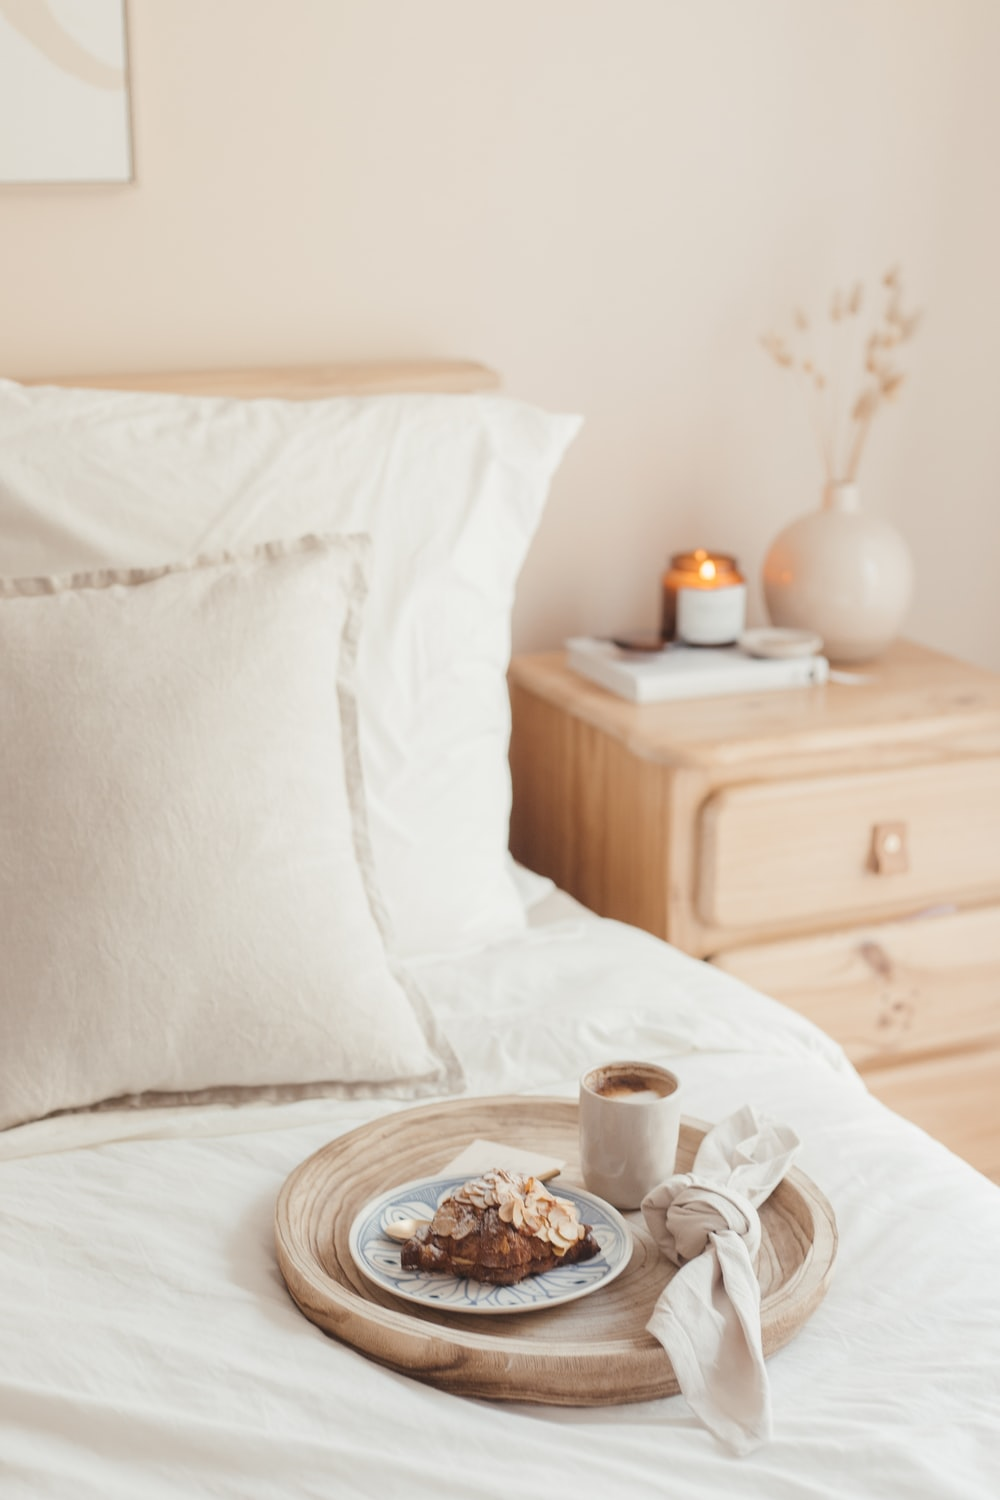 white and brown ceramic mug on brown wooden round table